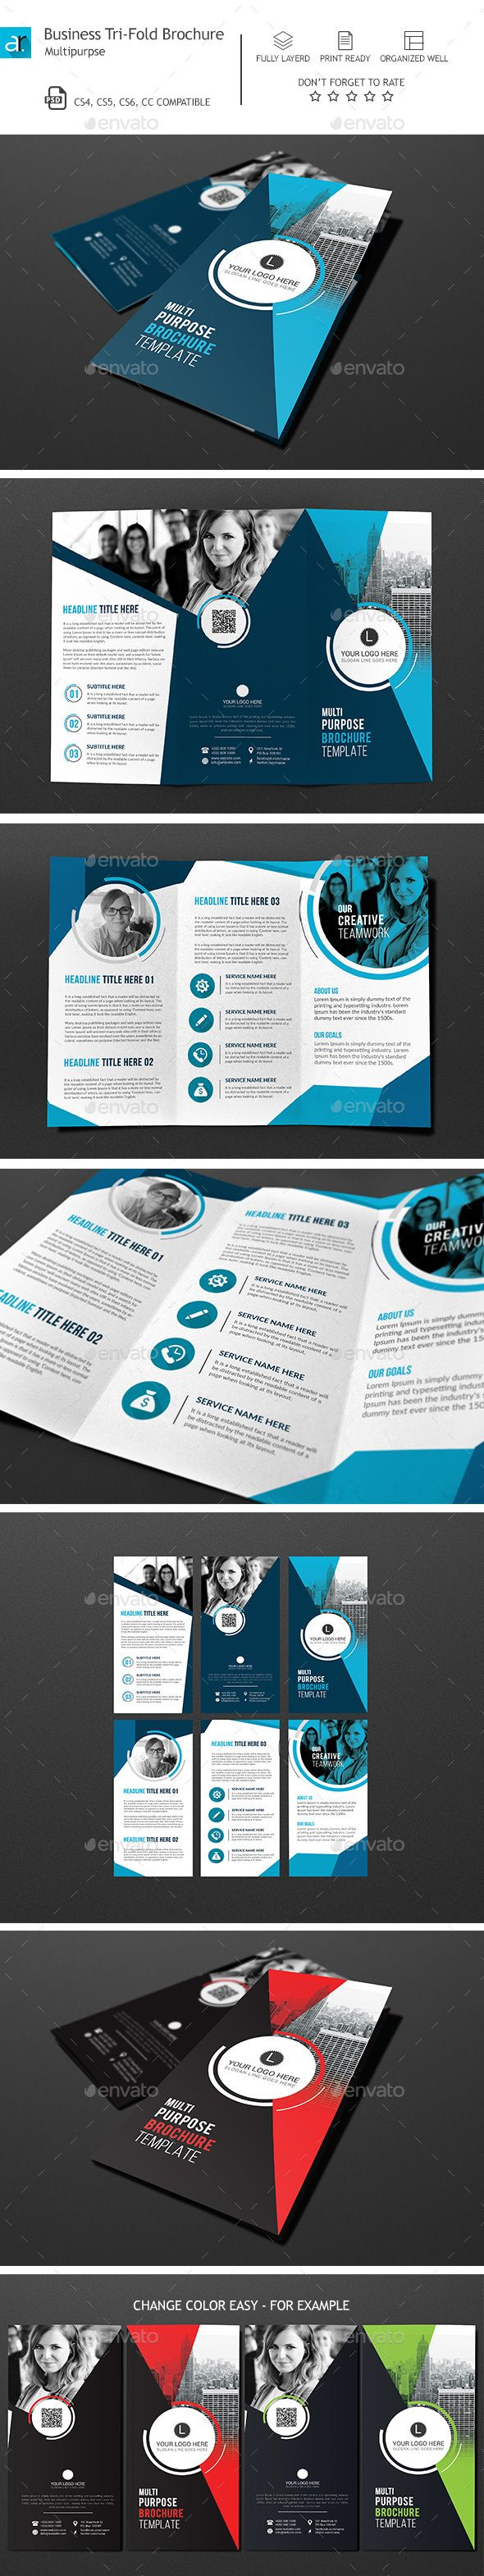 Corporate TriFold Brochure 03 — Photoshop PSD #templates #polygon point • Available here → https://graphicriver.net/item/corporate-trifold-brochure-03-/14770908?ref=pxcr